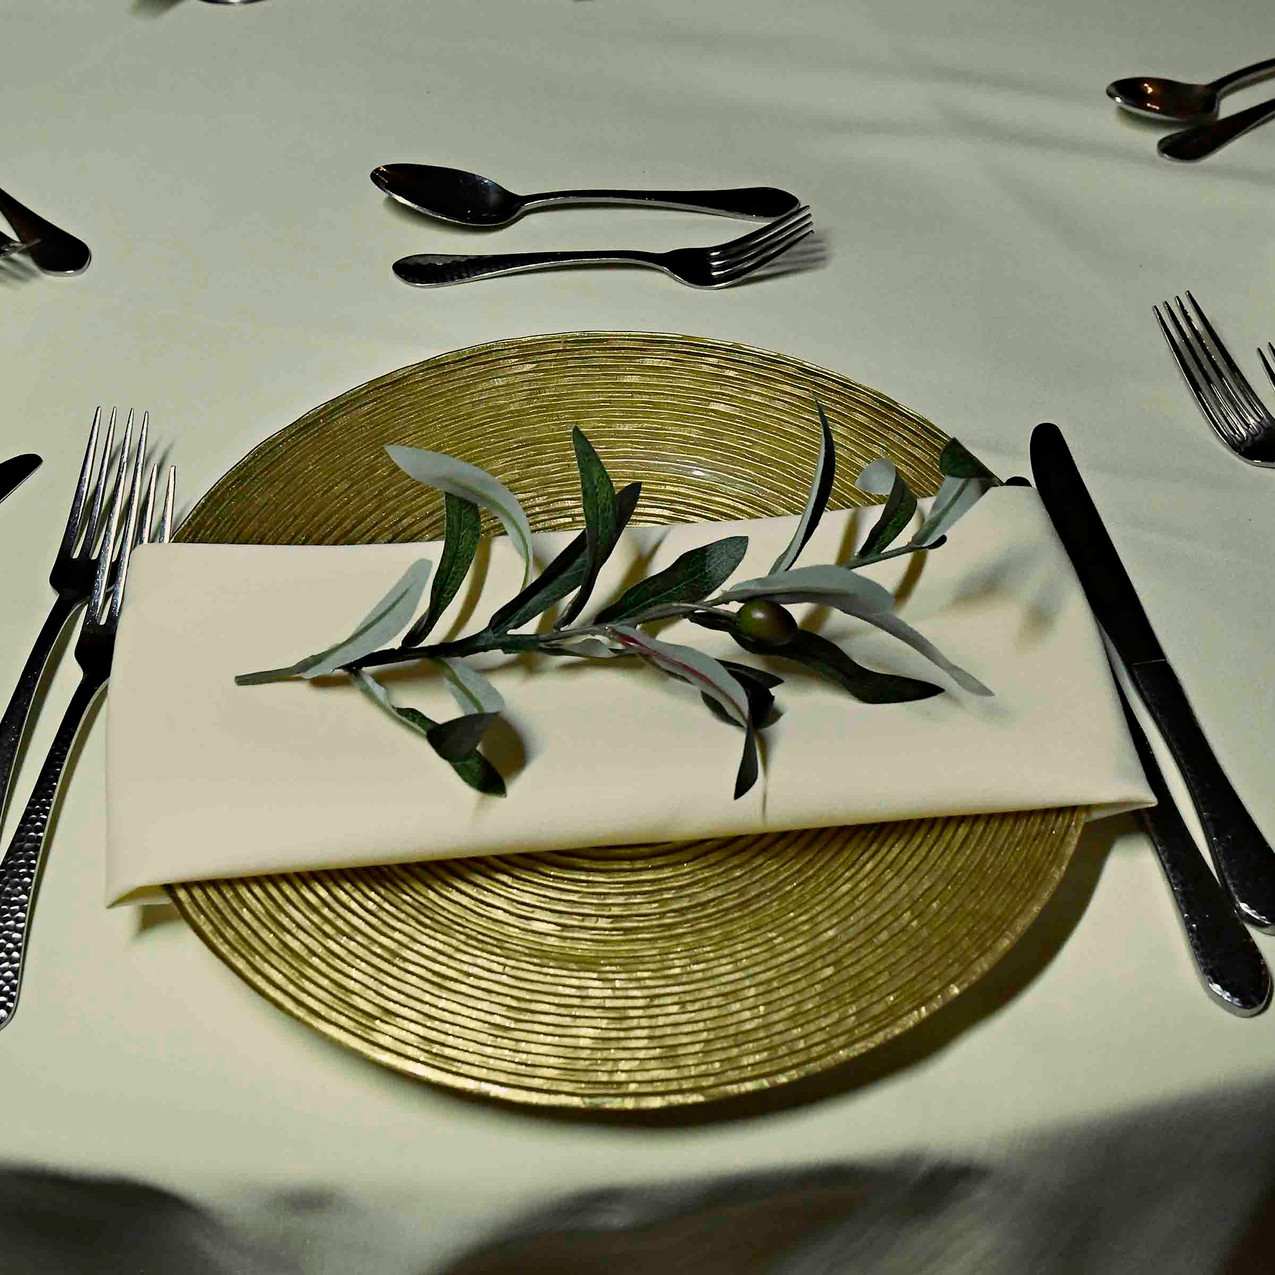 Love this place setting